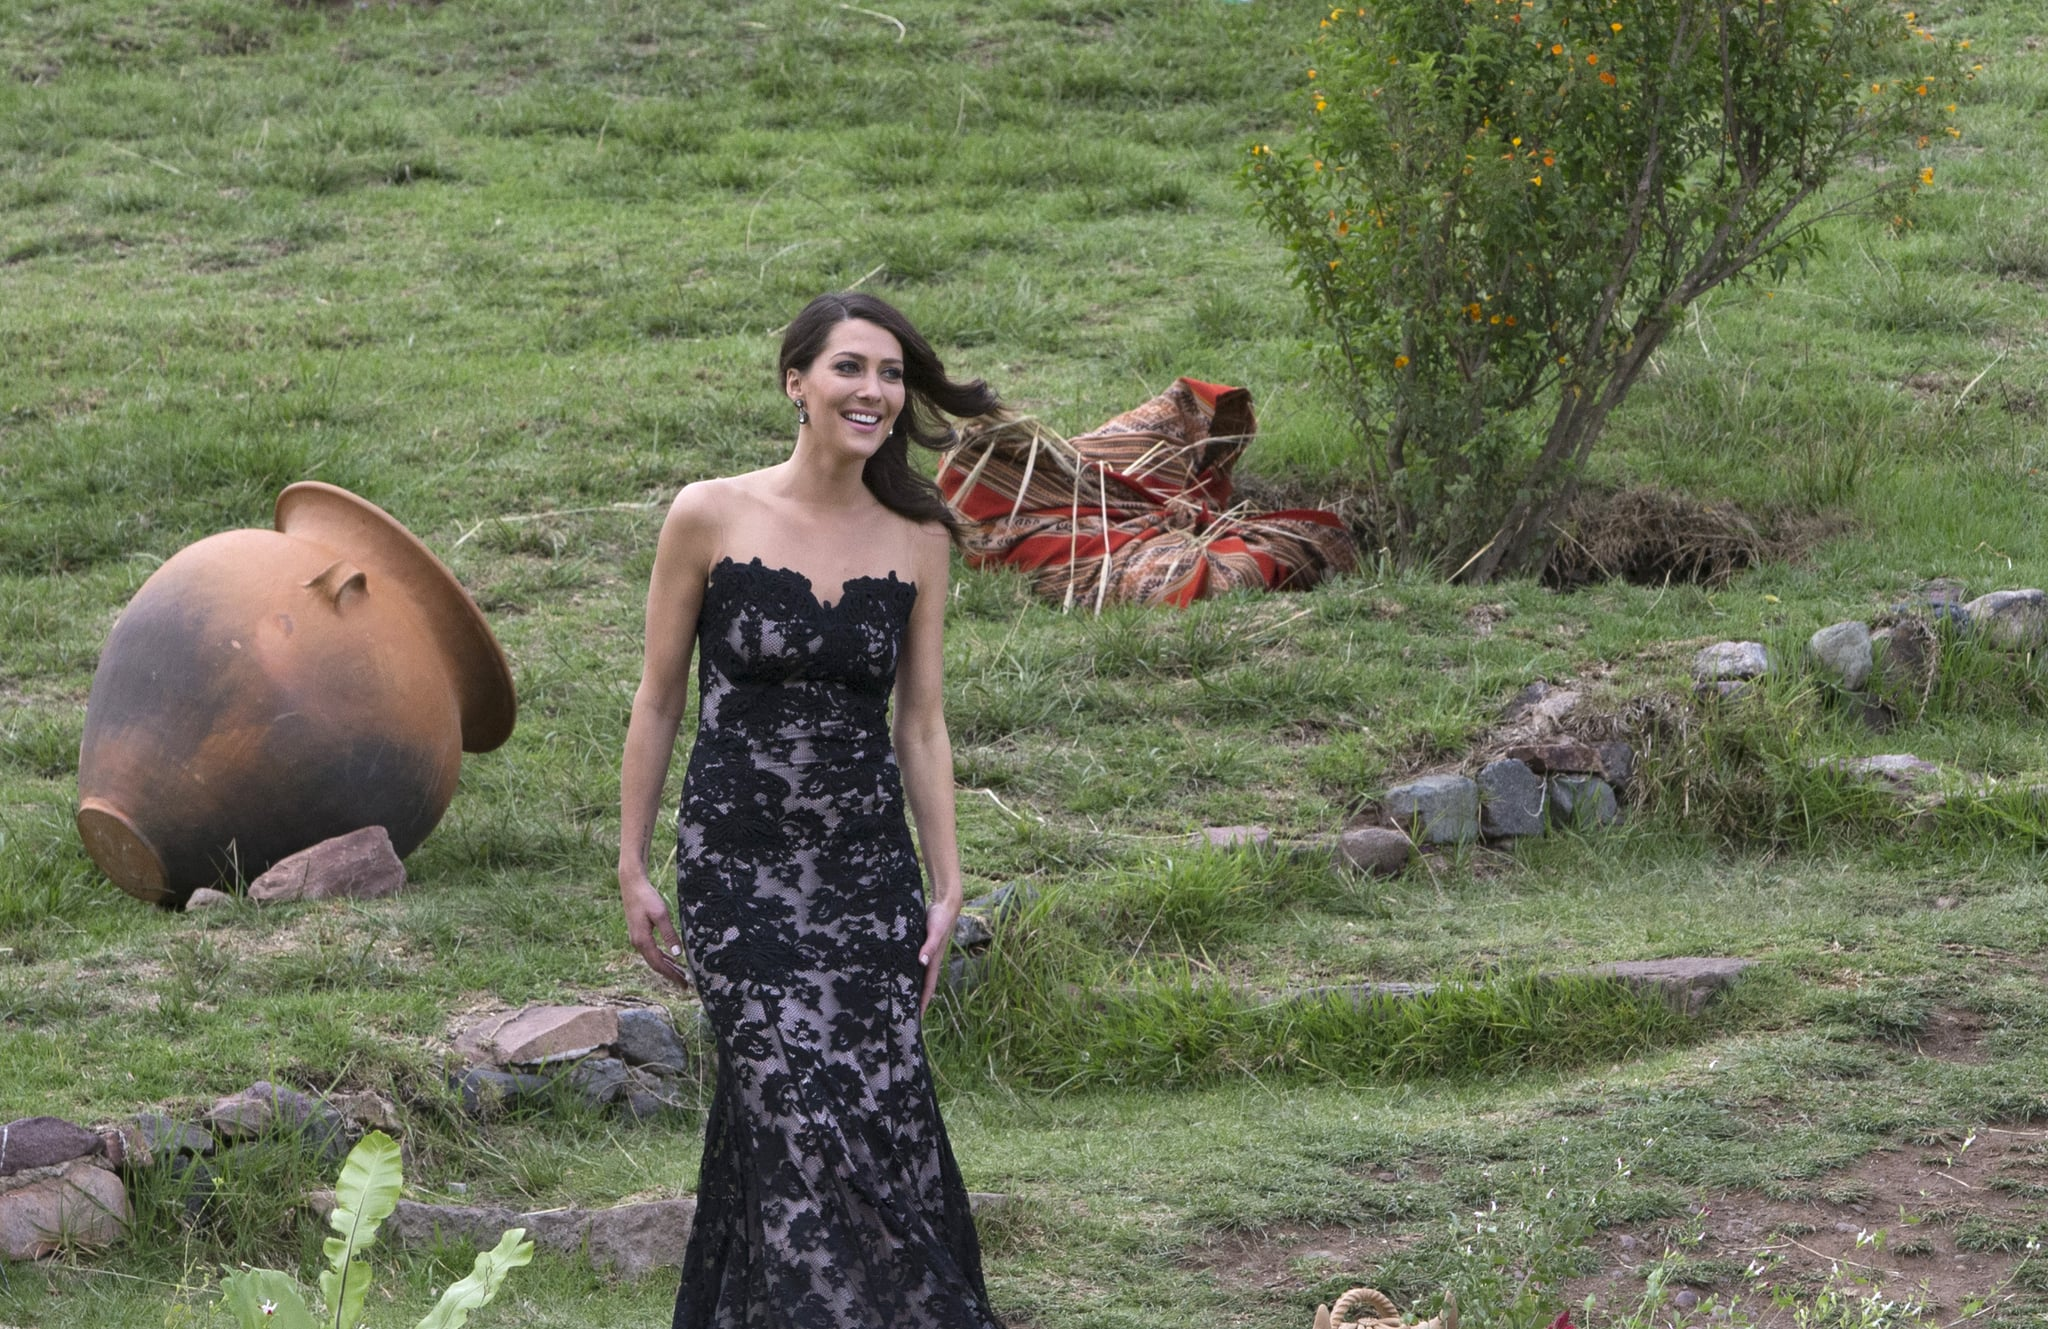 THE BACHELOR - Episode 2210 - The compelling live three-hour television event will begin with America watching along with the studio audience as Arie Luyendyk Jr.s journey to find love comes to its astonishing conclusion. The Bachelor prepares to make one of the most difficult choices of his life, having narrowed down the field to two women with whom he is madly in love  Becca K. and Lauren B. - and told both of them that he loves them. Who does Arie, after much soul-searching, see as his future wife? Find out on the season finale of The Bachelor, MONDAY, MARCH 5 (8:00-11:00 p.m. EST), on The ABC Television Network. (ABC/Paul Hebert)BECCA